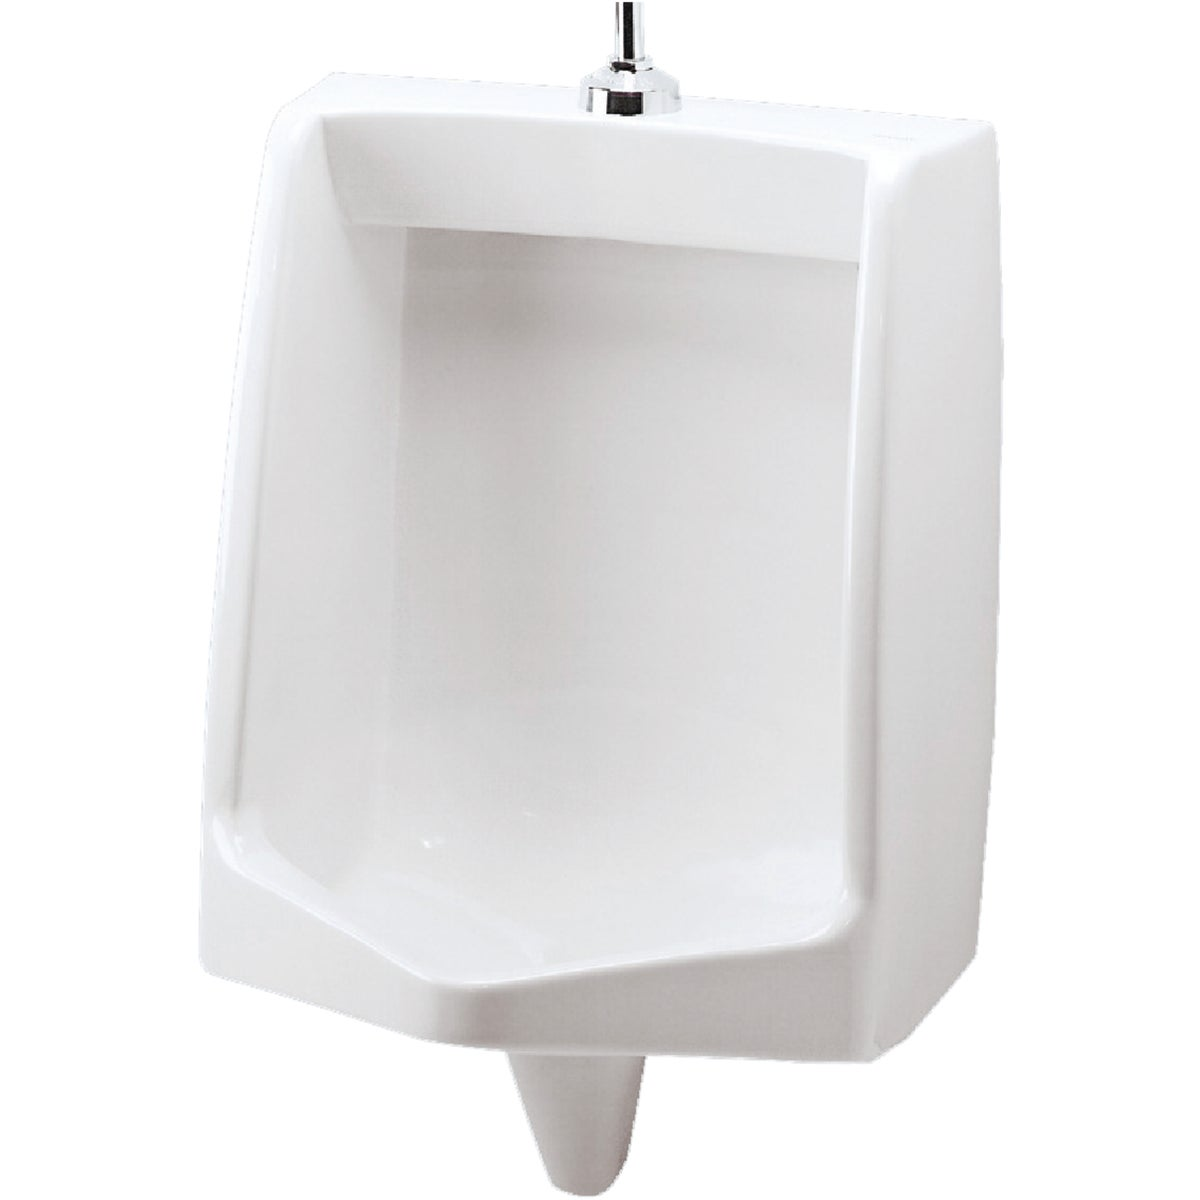 WHITE 0.5 GPF URINAL - 410010055 by Mansfield Plumbing